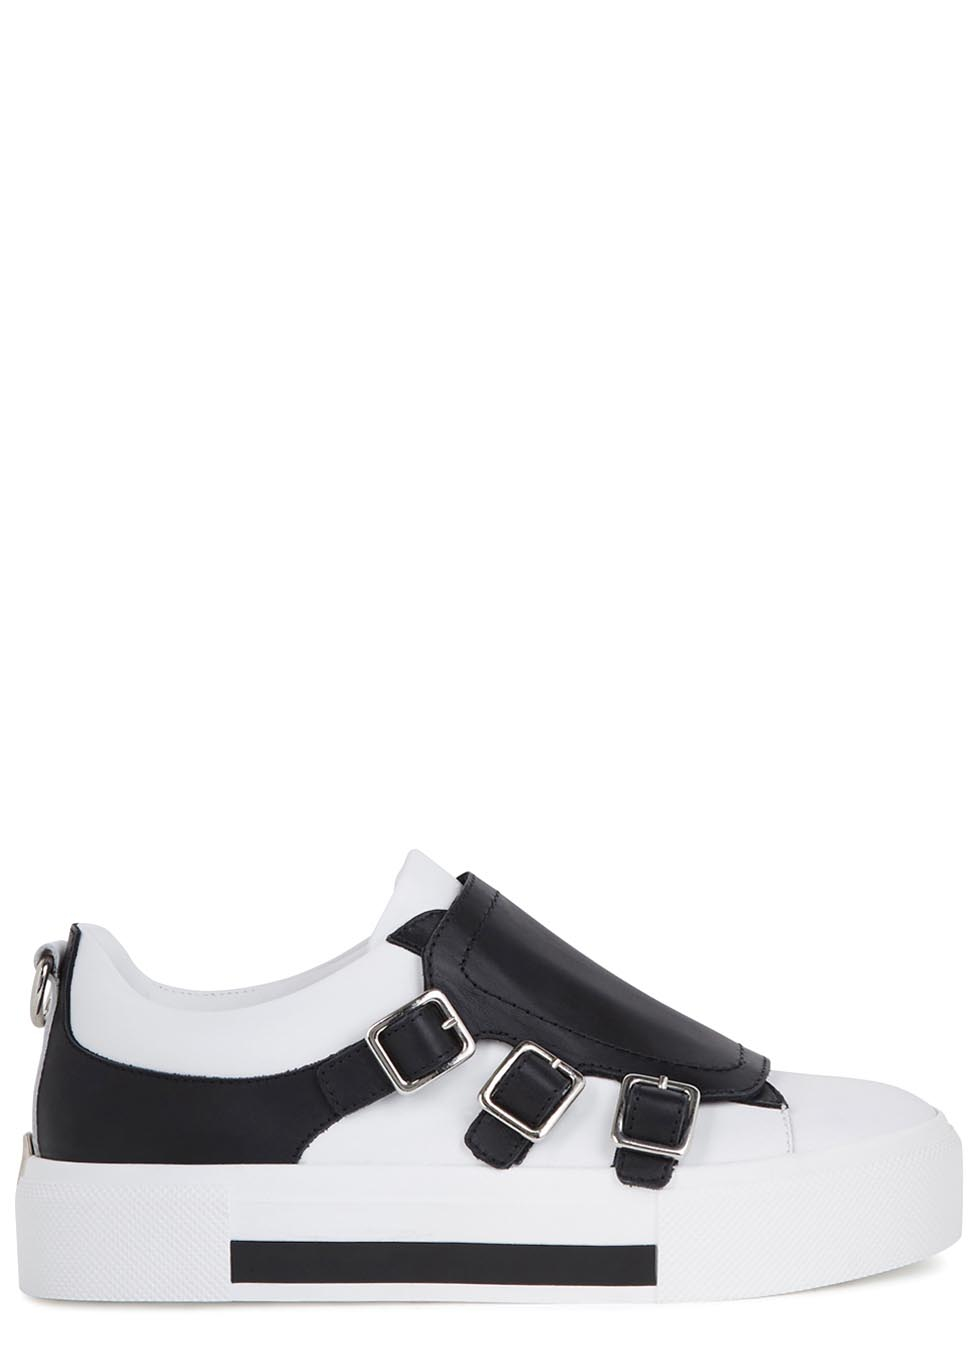 Flatforms are the 90s-inspired shoe of the season and will help you nail the minimalist look fo sho. Go for lace-up detailing and stand out eyelets to keep the interest on you. A cleated sole will give your newfound look some serious edge and fashion fever.